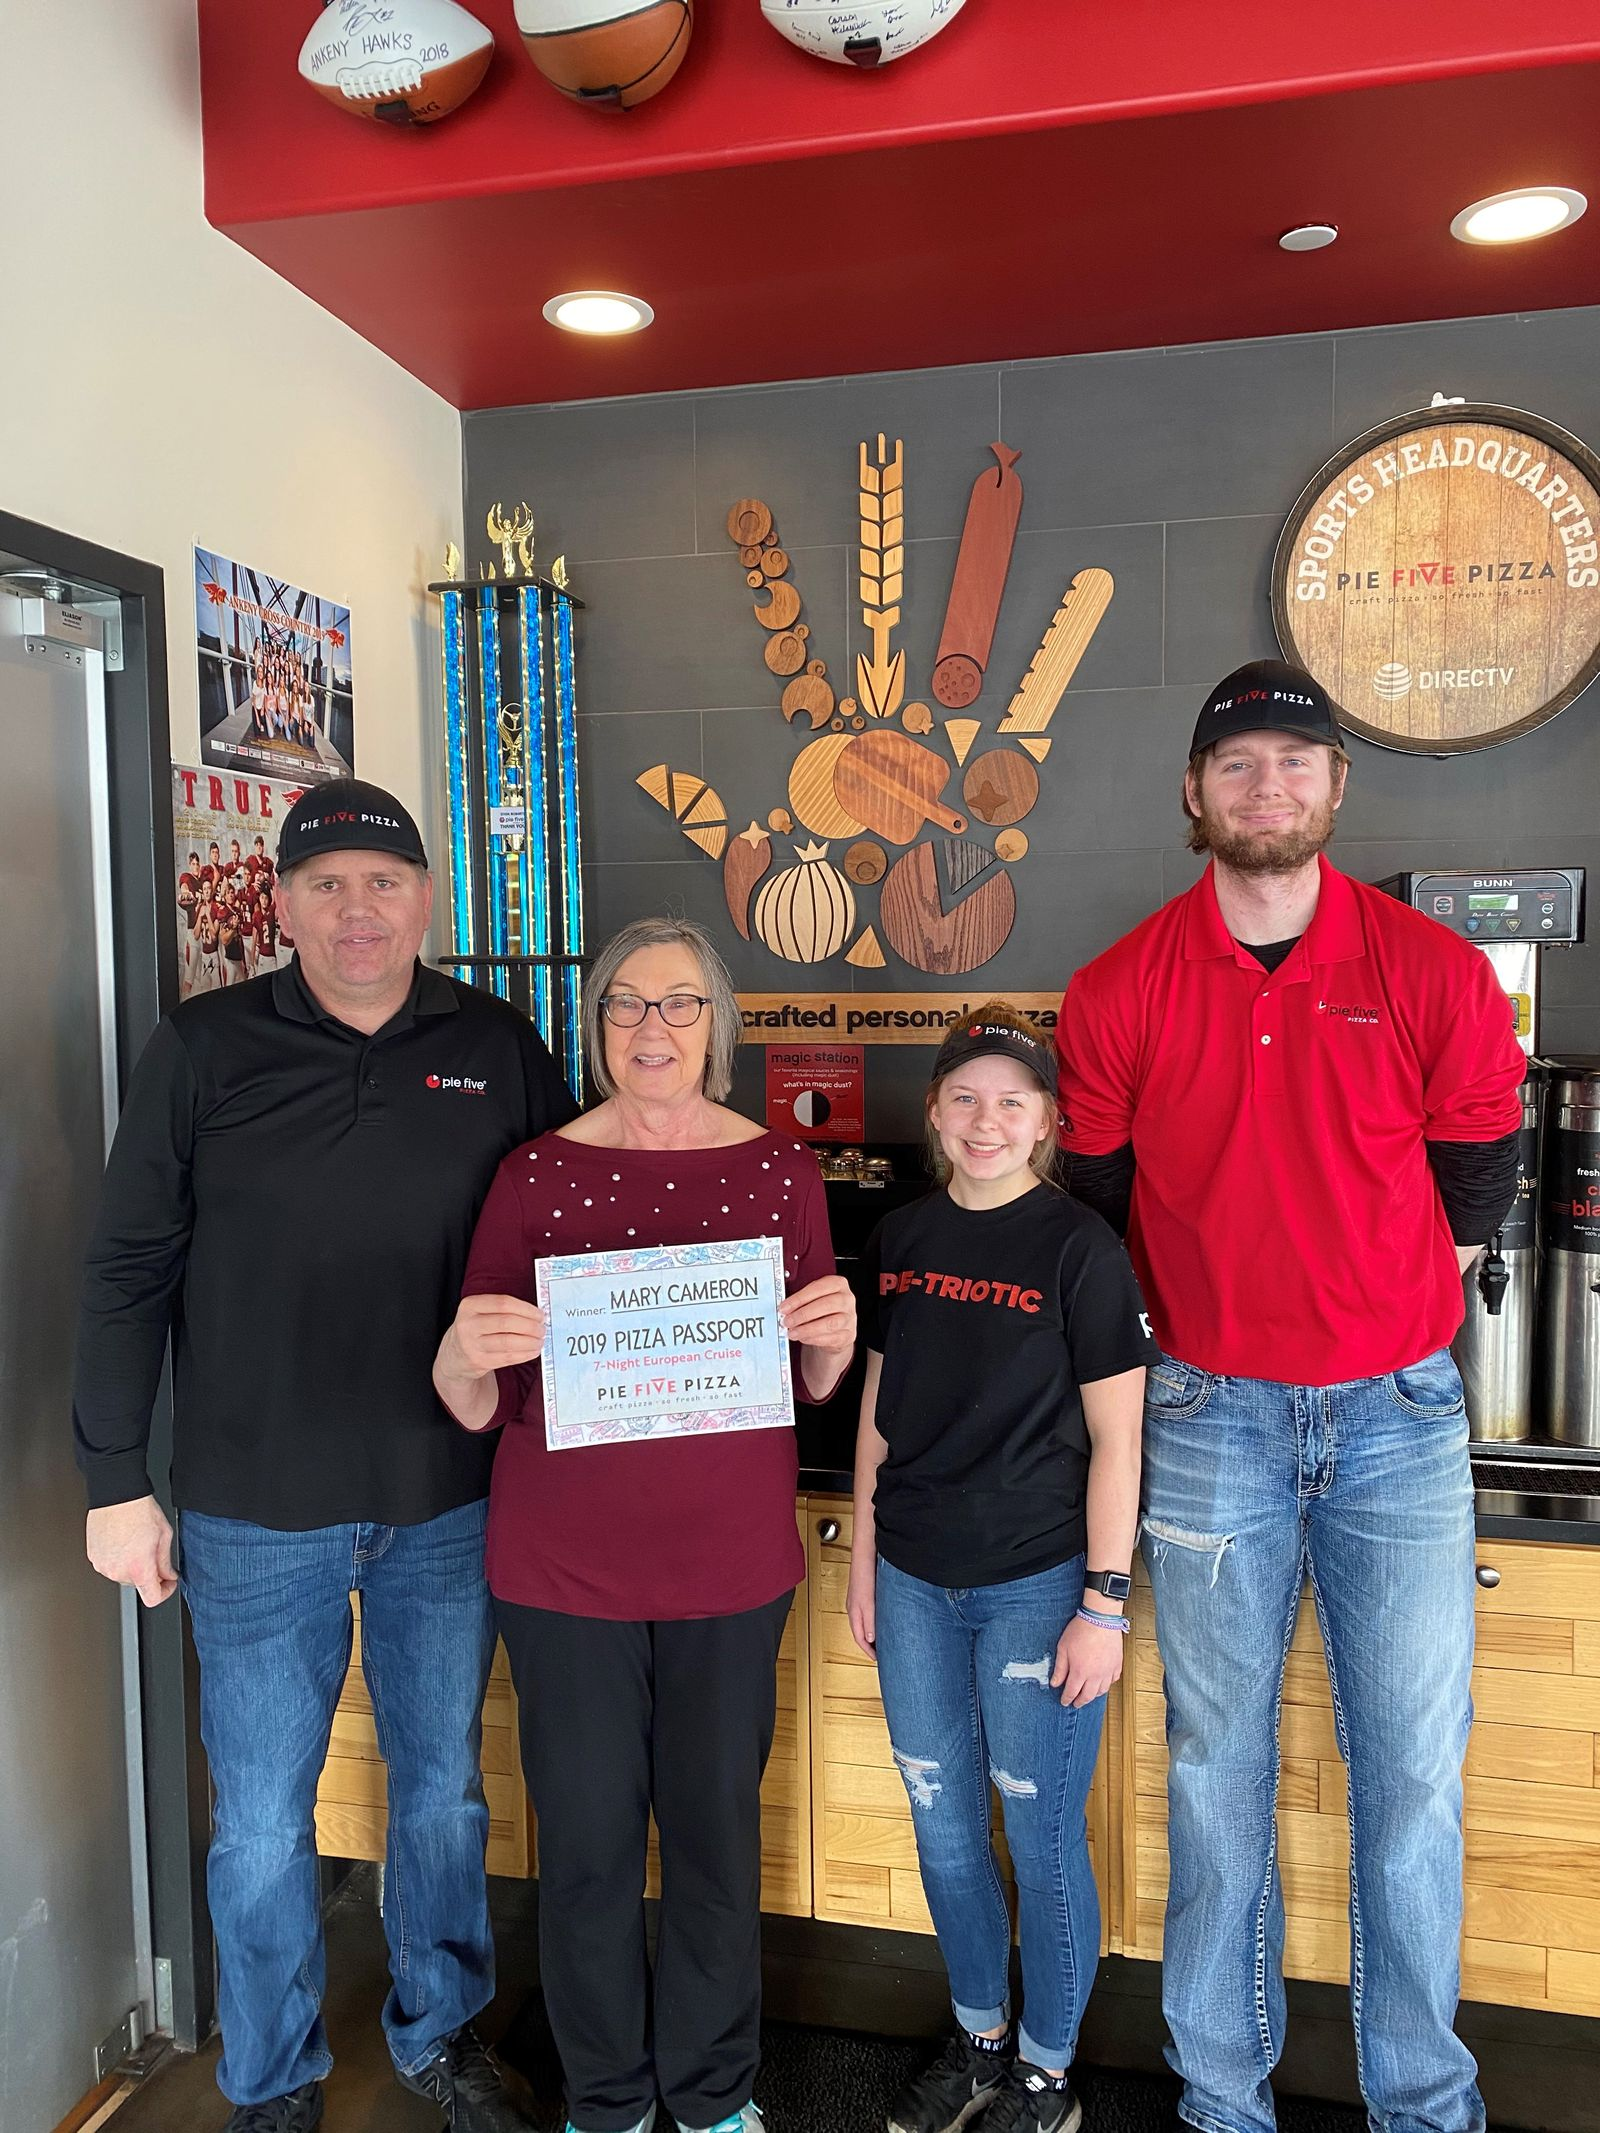 Local Resident Wins Pie Five's Pizza Passport Sweepstakes